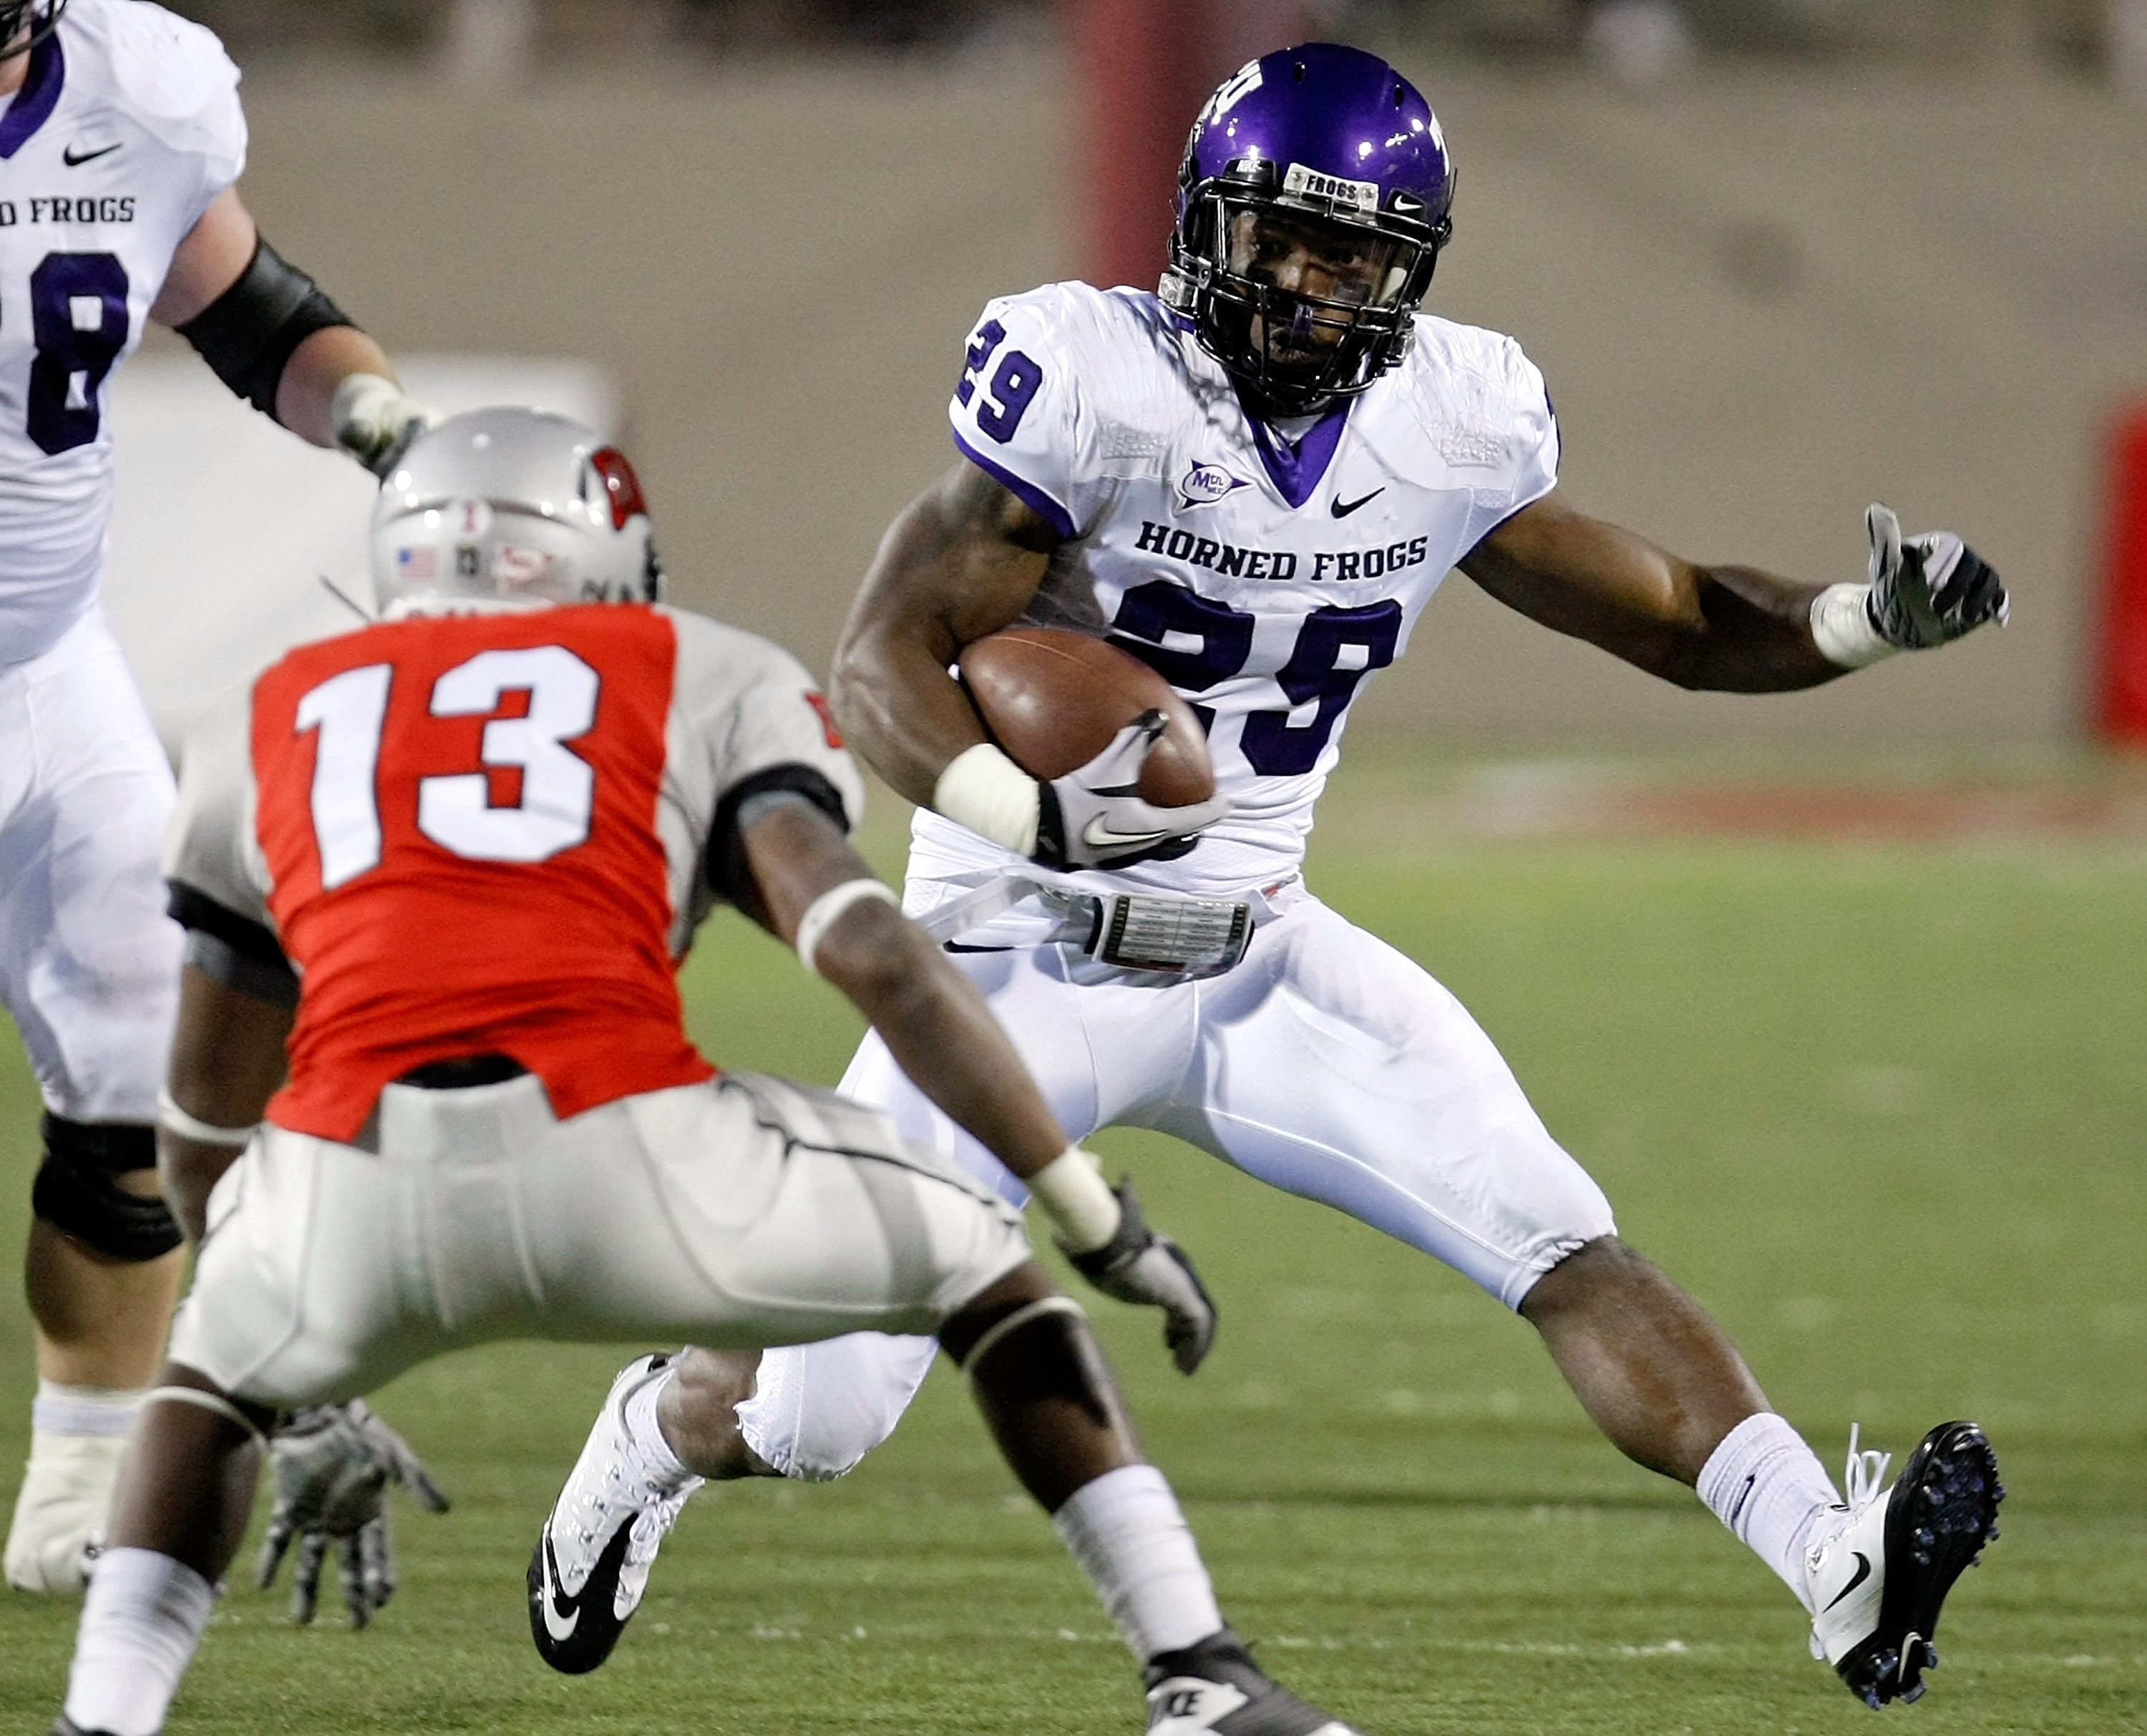 LAS VEGAS - OCTOBER 30:  Matthew Tucker #29 of the Texas Christian University Horned Frogs runs for yardage against Eric Tuiloma #13 of the UNLV Rebels at Sam Boyd Stadium October 30, 2010 in Las Vegas, Nevada. TCU won 48-6.  (Photo by Ethan Miller/Getty